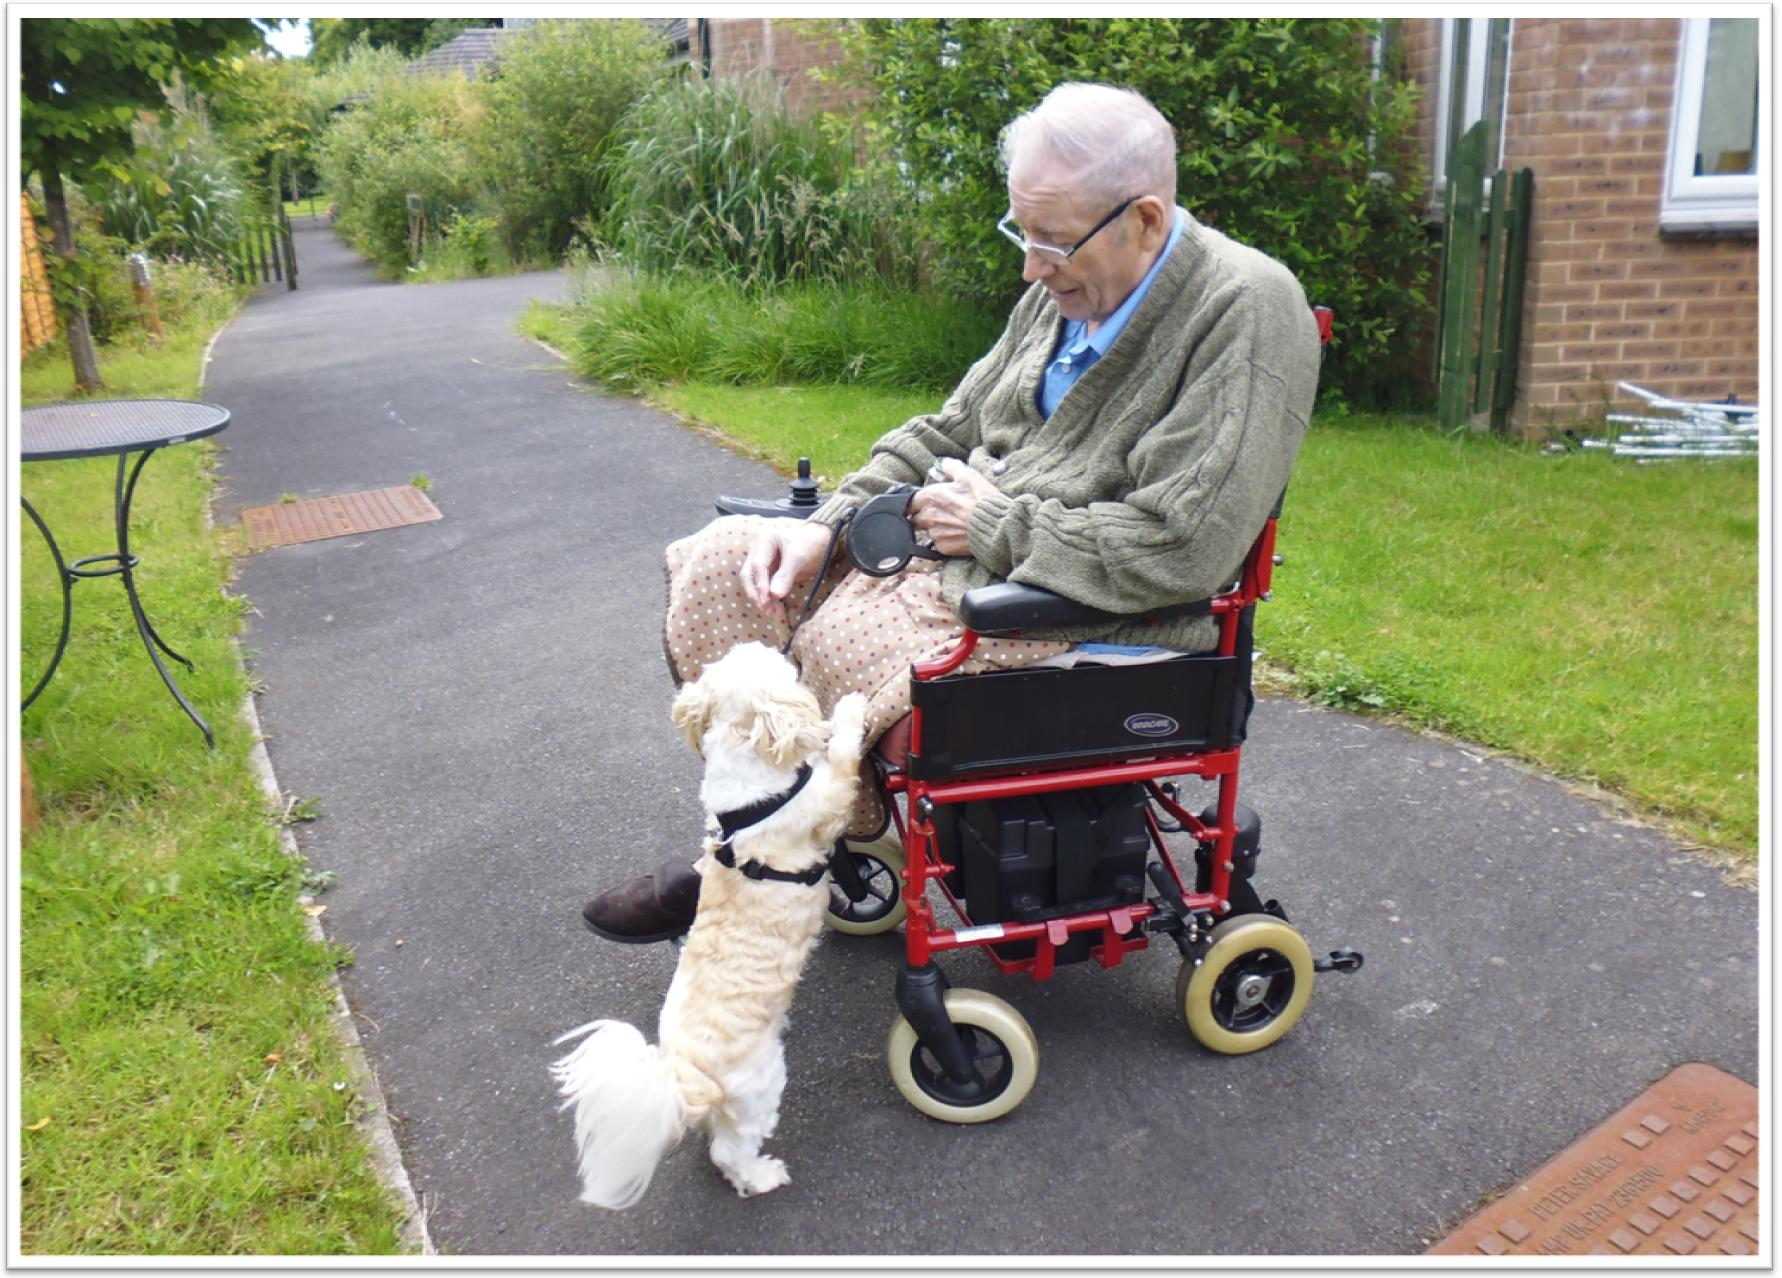 Man with Bertie the dog